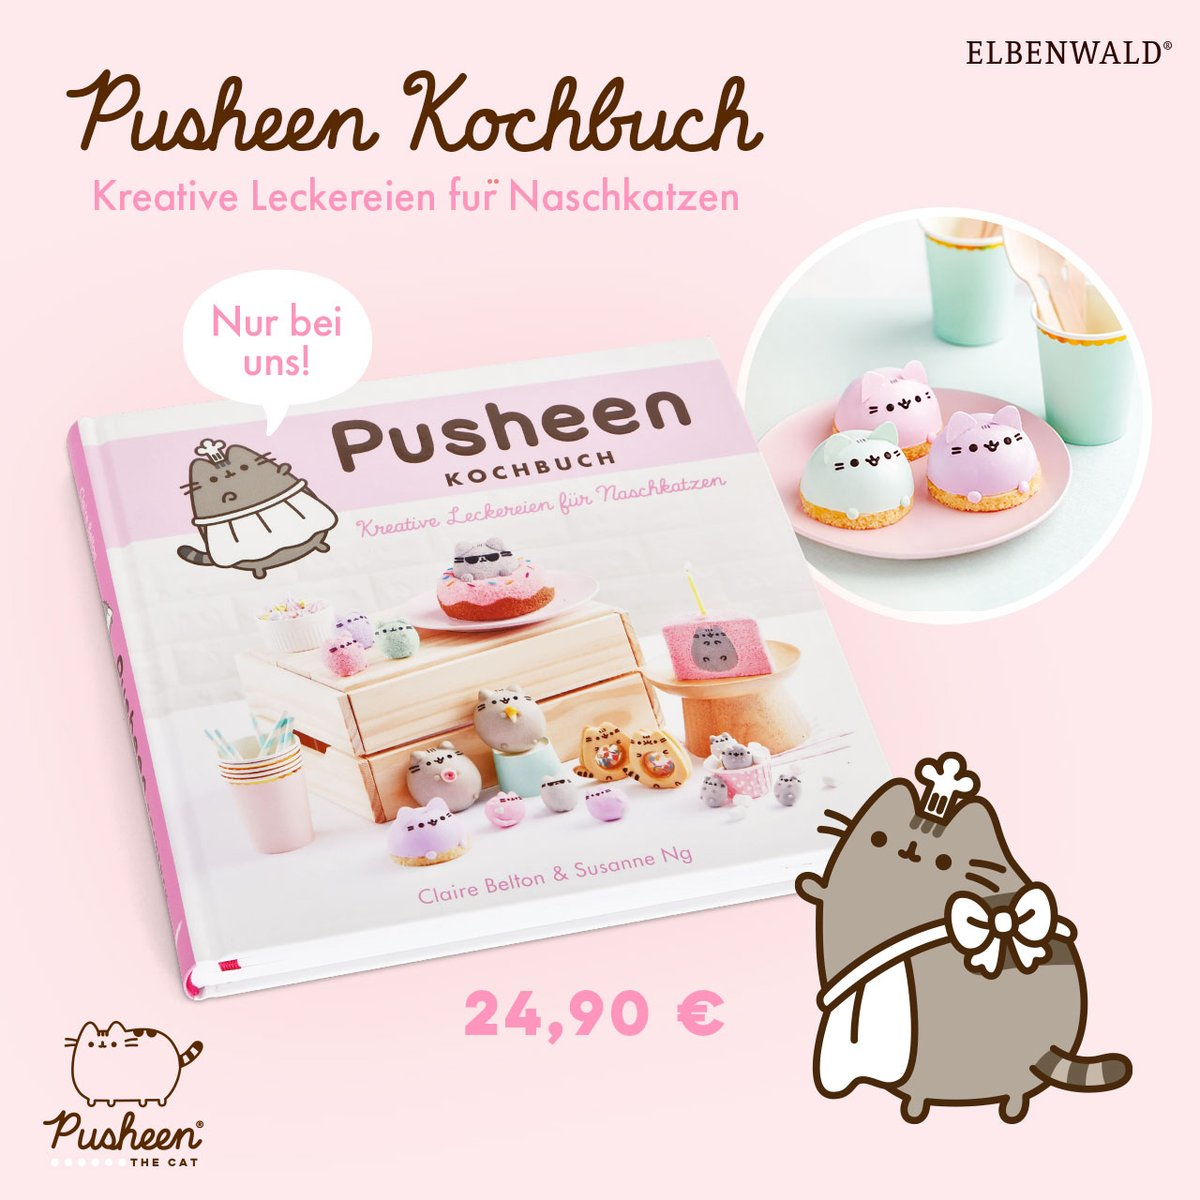 GERMAN PUSHEEN FANS! ✨ Lift your paws if youve been looking for the Pusheen cookbook...Well, now youre in luck! Shop #Pusheens newest book, LETS BAKE, at Elbenwald online via the link in our bio or in stores now! bit.ly/32W037m